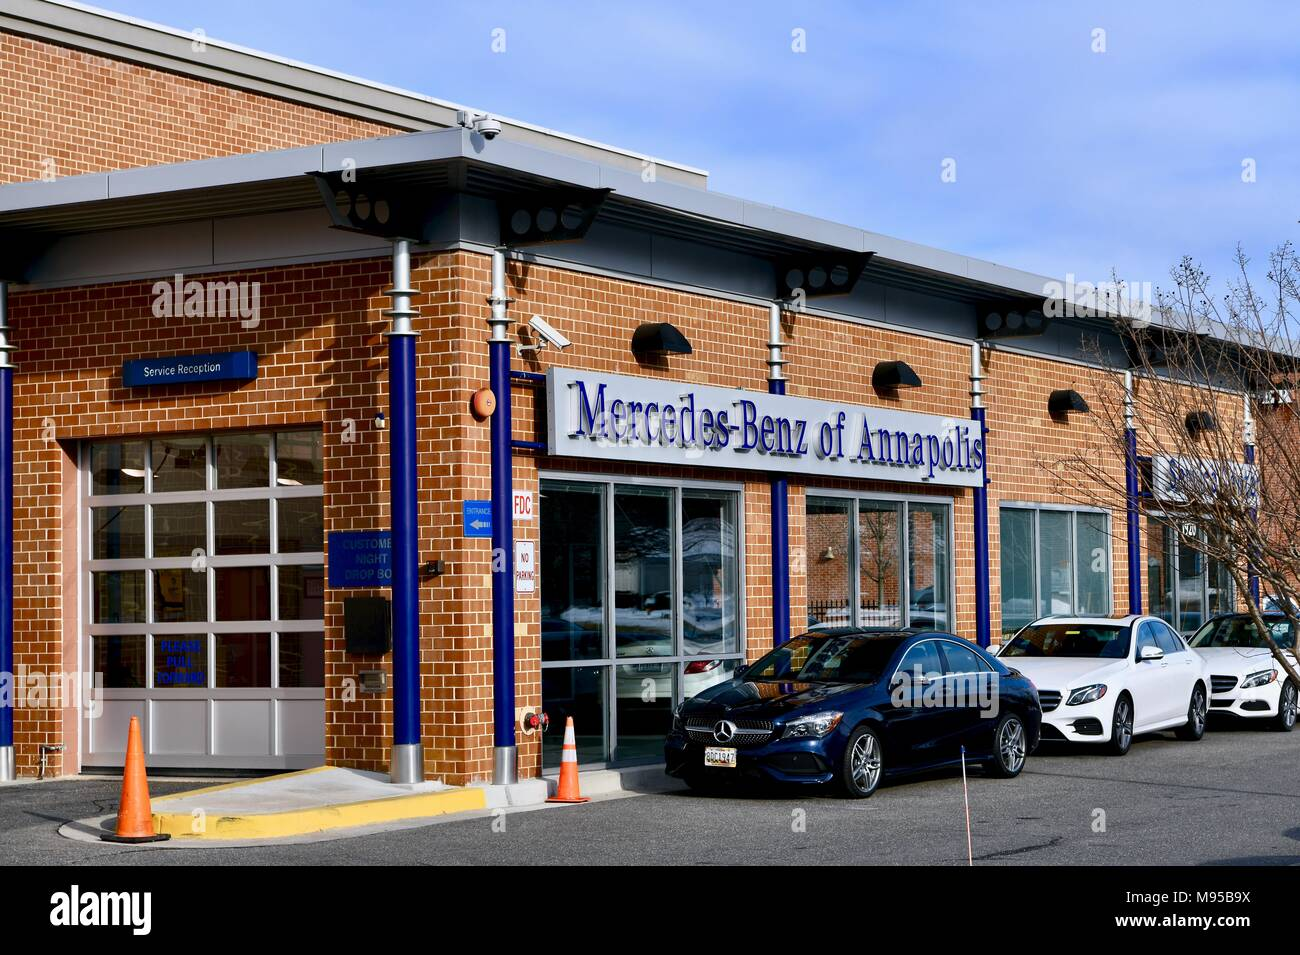 Great Mercedes Benz Of Annapolis, USA